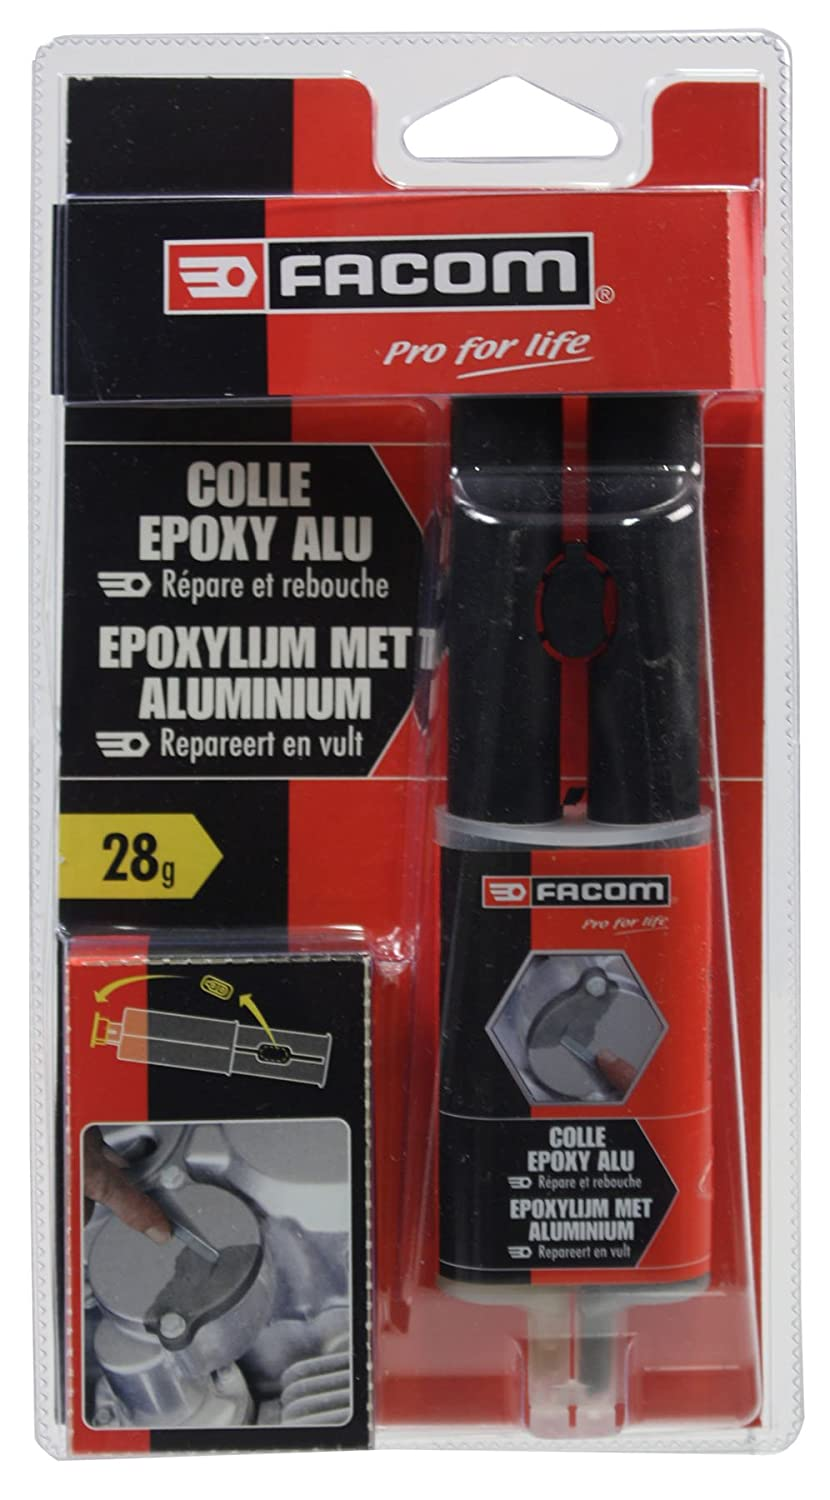 Facom 006090 Colle Epoxy Alu 28 g